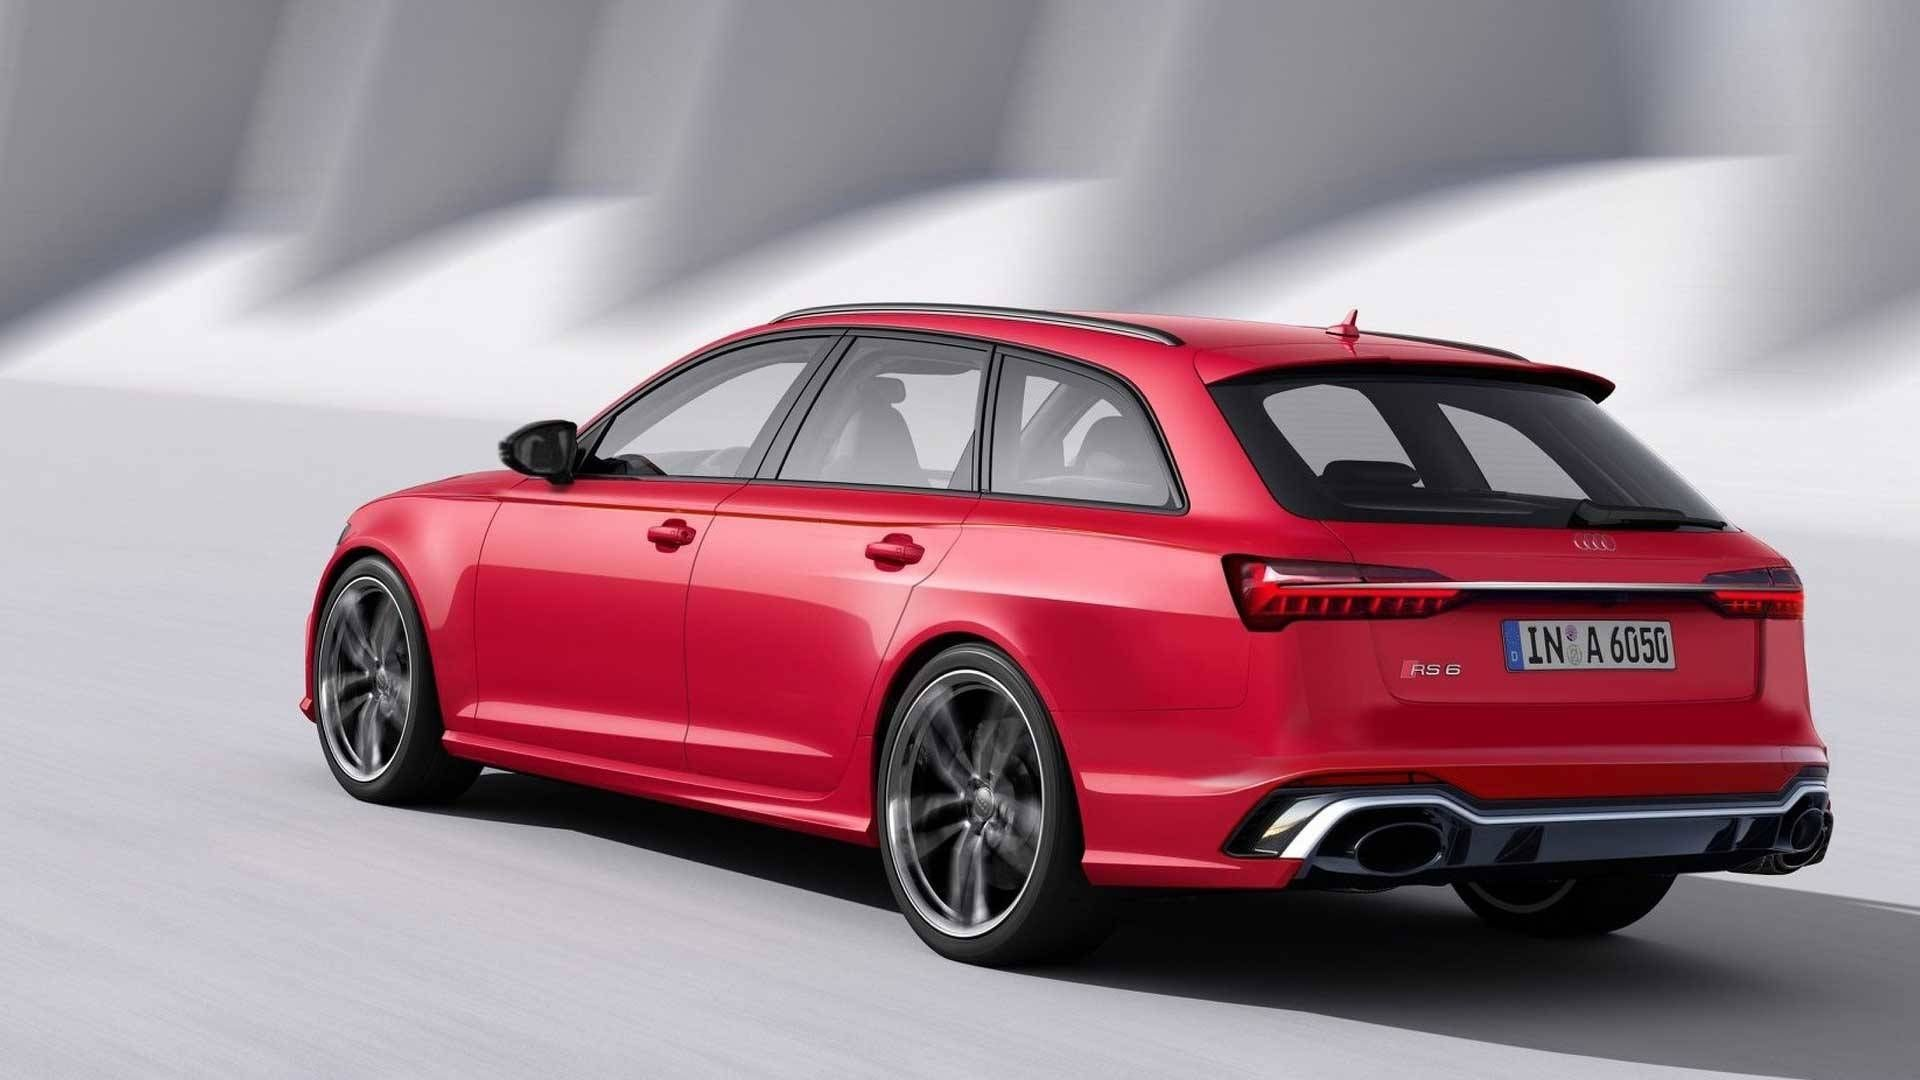 The 2019 Audi Rs6 Avant Spesification Cars Review 2019